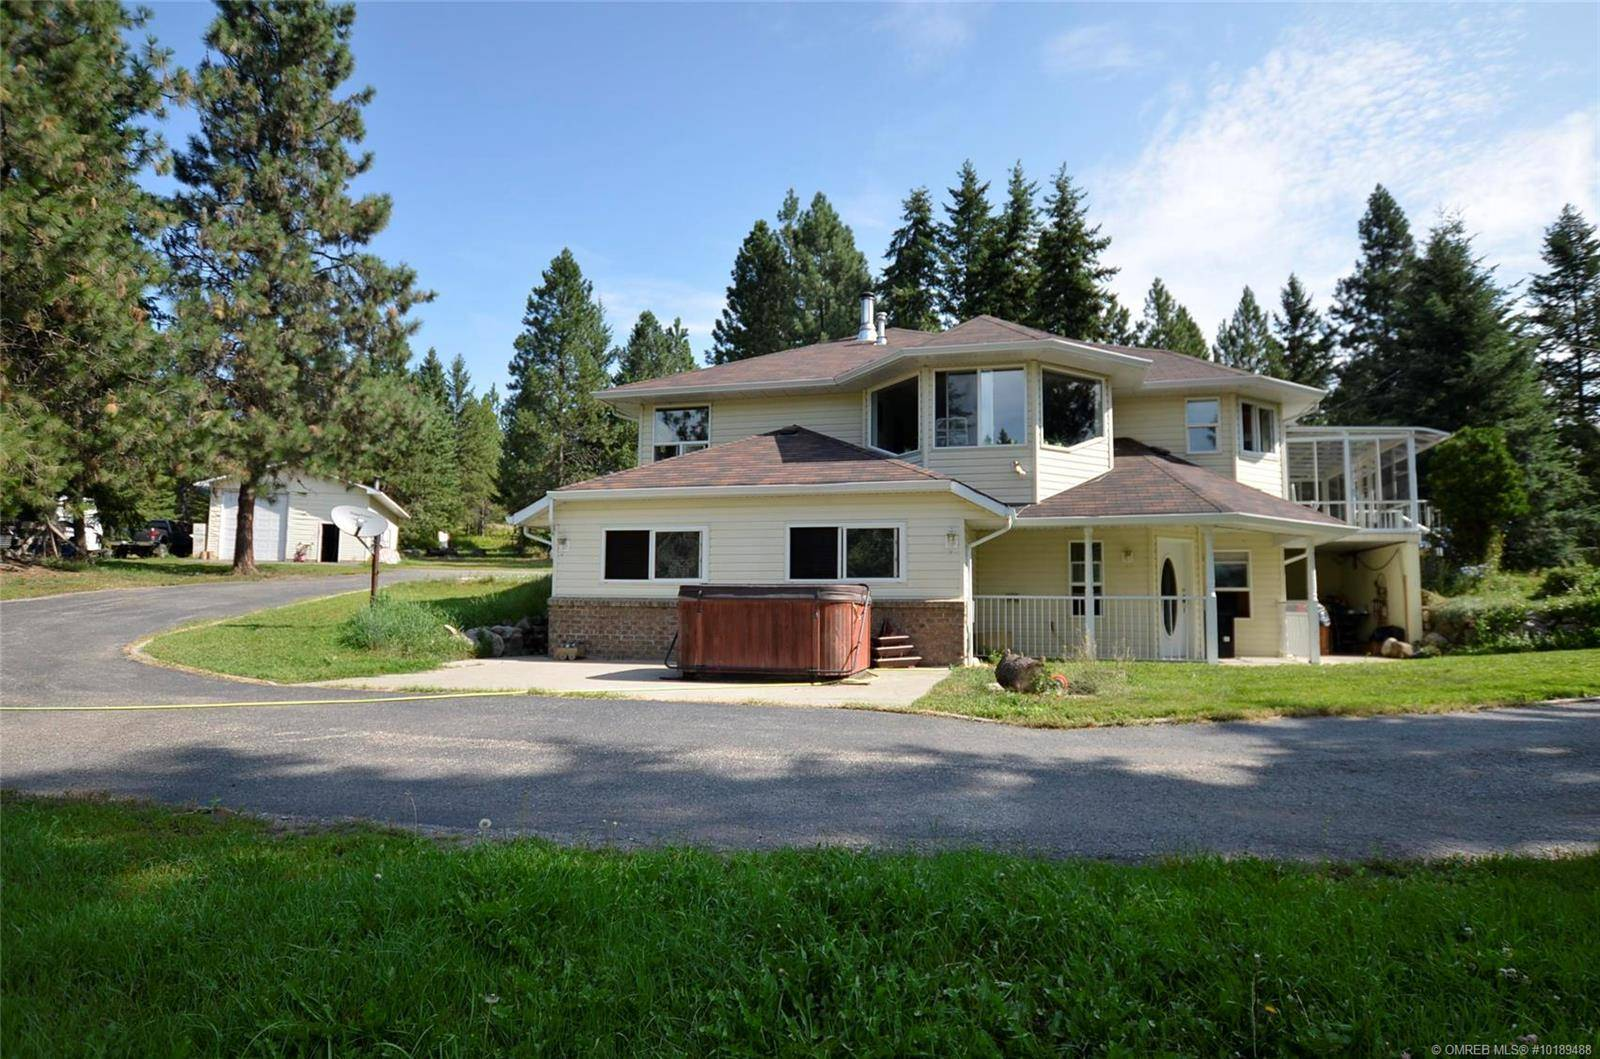 House for sale at 90 Mcinnes Rd Lumby British Columbia - MLS: 10189488